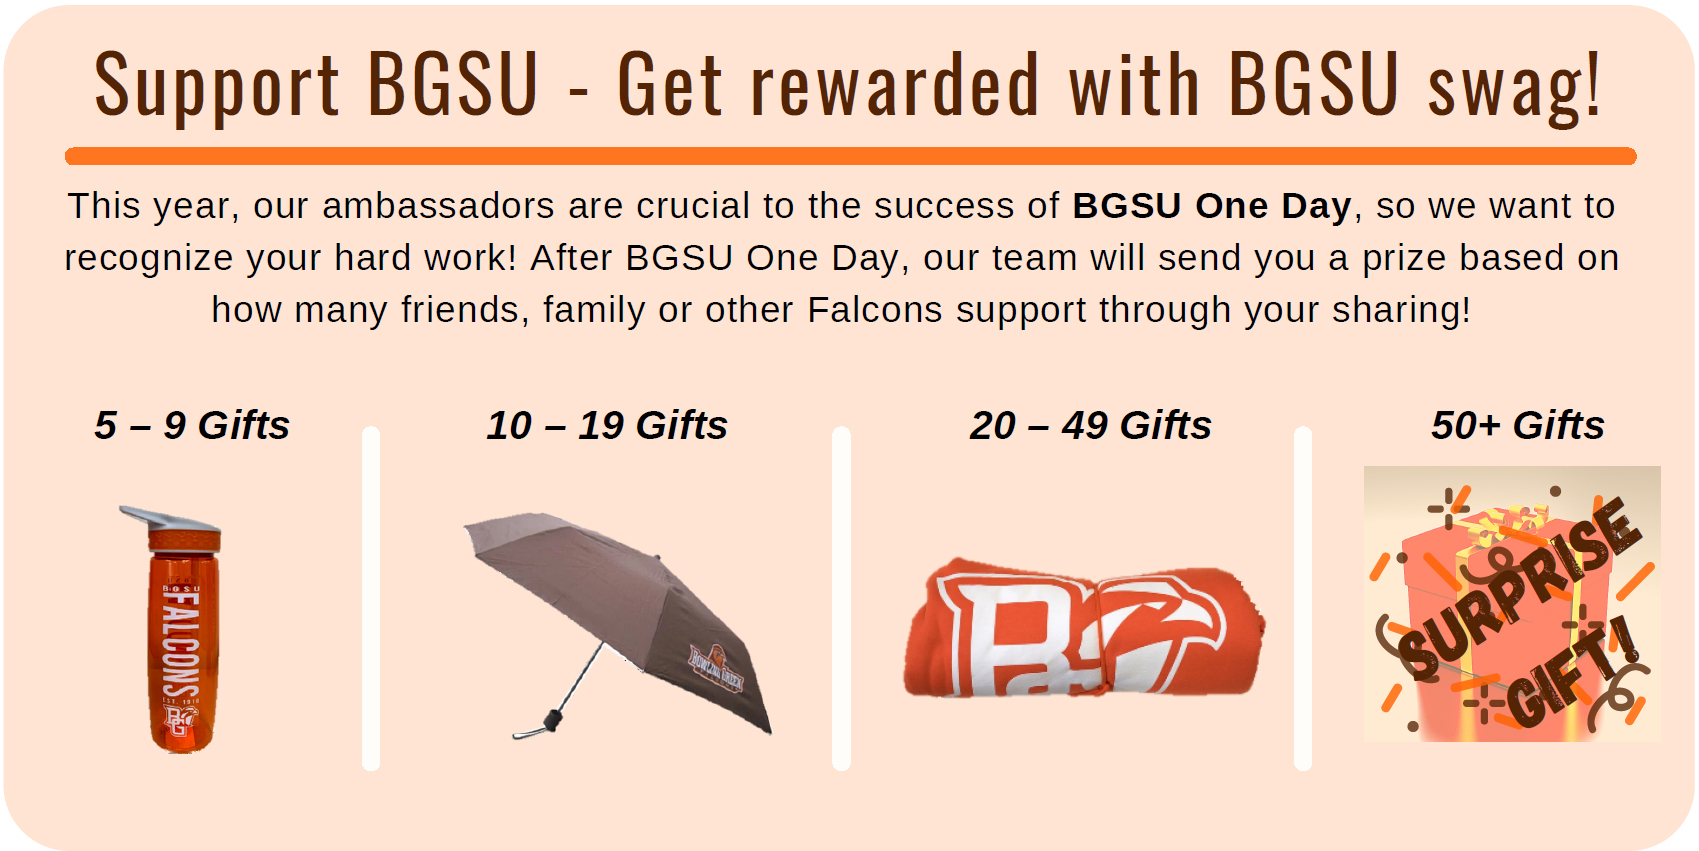 Support BGSU - Get rewarded with BGSU swag! This year, our ambassadors are crucial to the success of BGSU One Day, so we want to recognize your hard work! After BGSU One Day, our team will send you a prize based on how many friends, family or other Falcons support through your sharing! 5 to 9 gifts will win you an orange BGSU water bottle, 10 to 19 gifts will get you a brown BGSU umbrella with the peek a boo logo, 20-49 gifts will get you an orange BGSU blanket, and 50 or more gifts will get you a surprise prize that is yet to be determined.